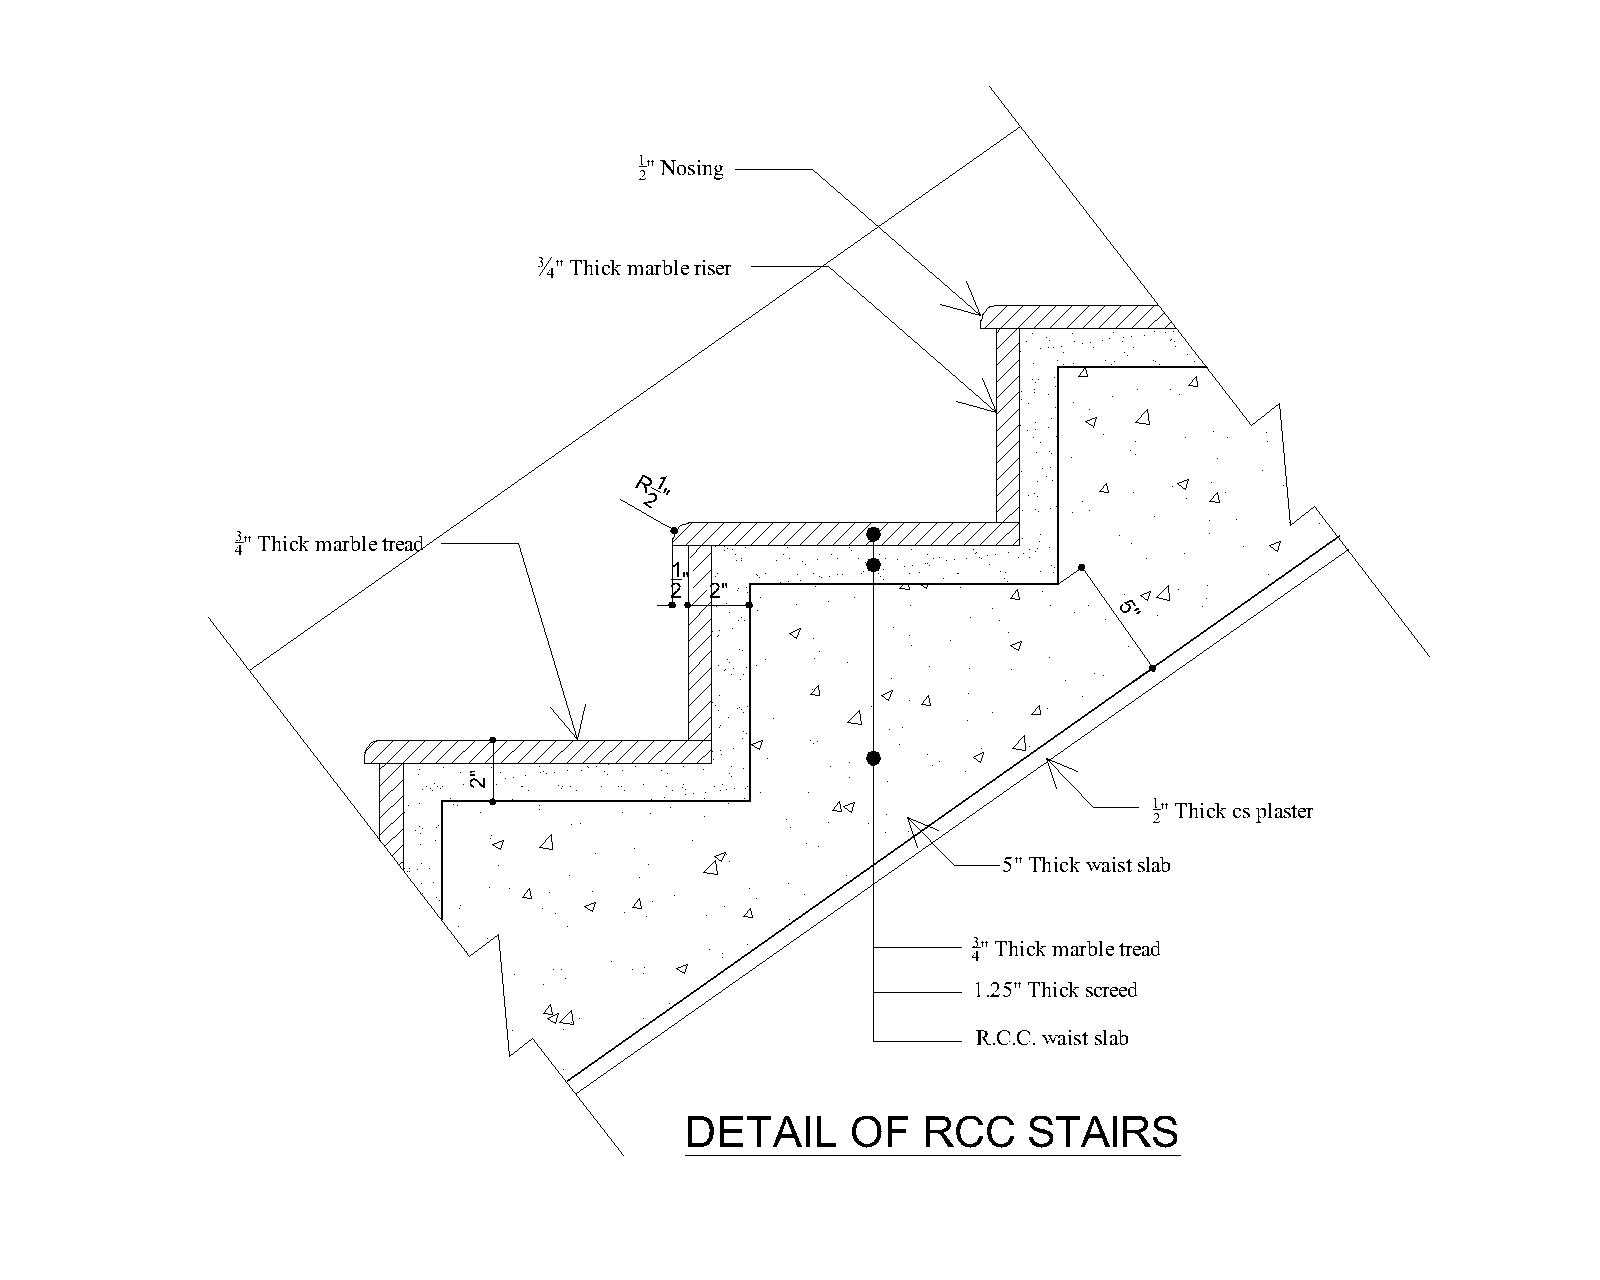 Concrete Stair Section - Stlfamilylife